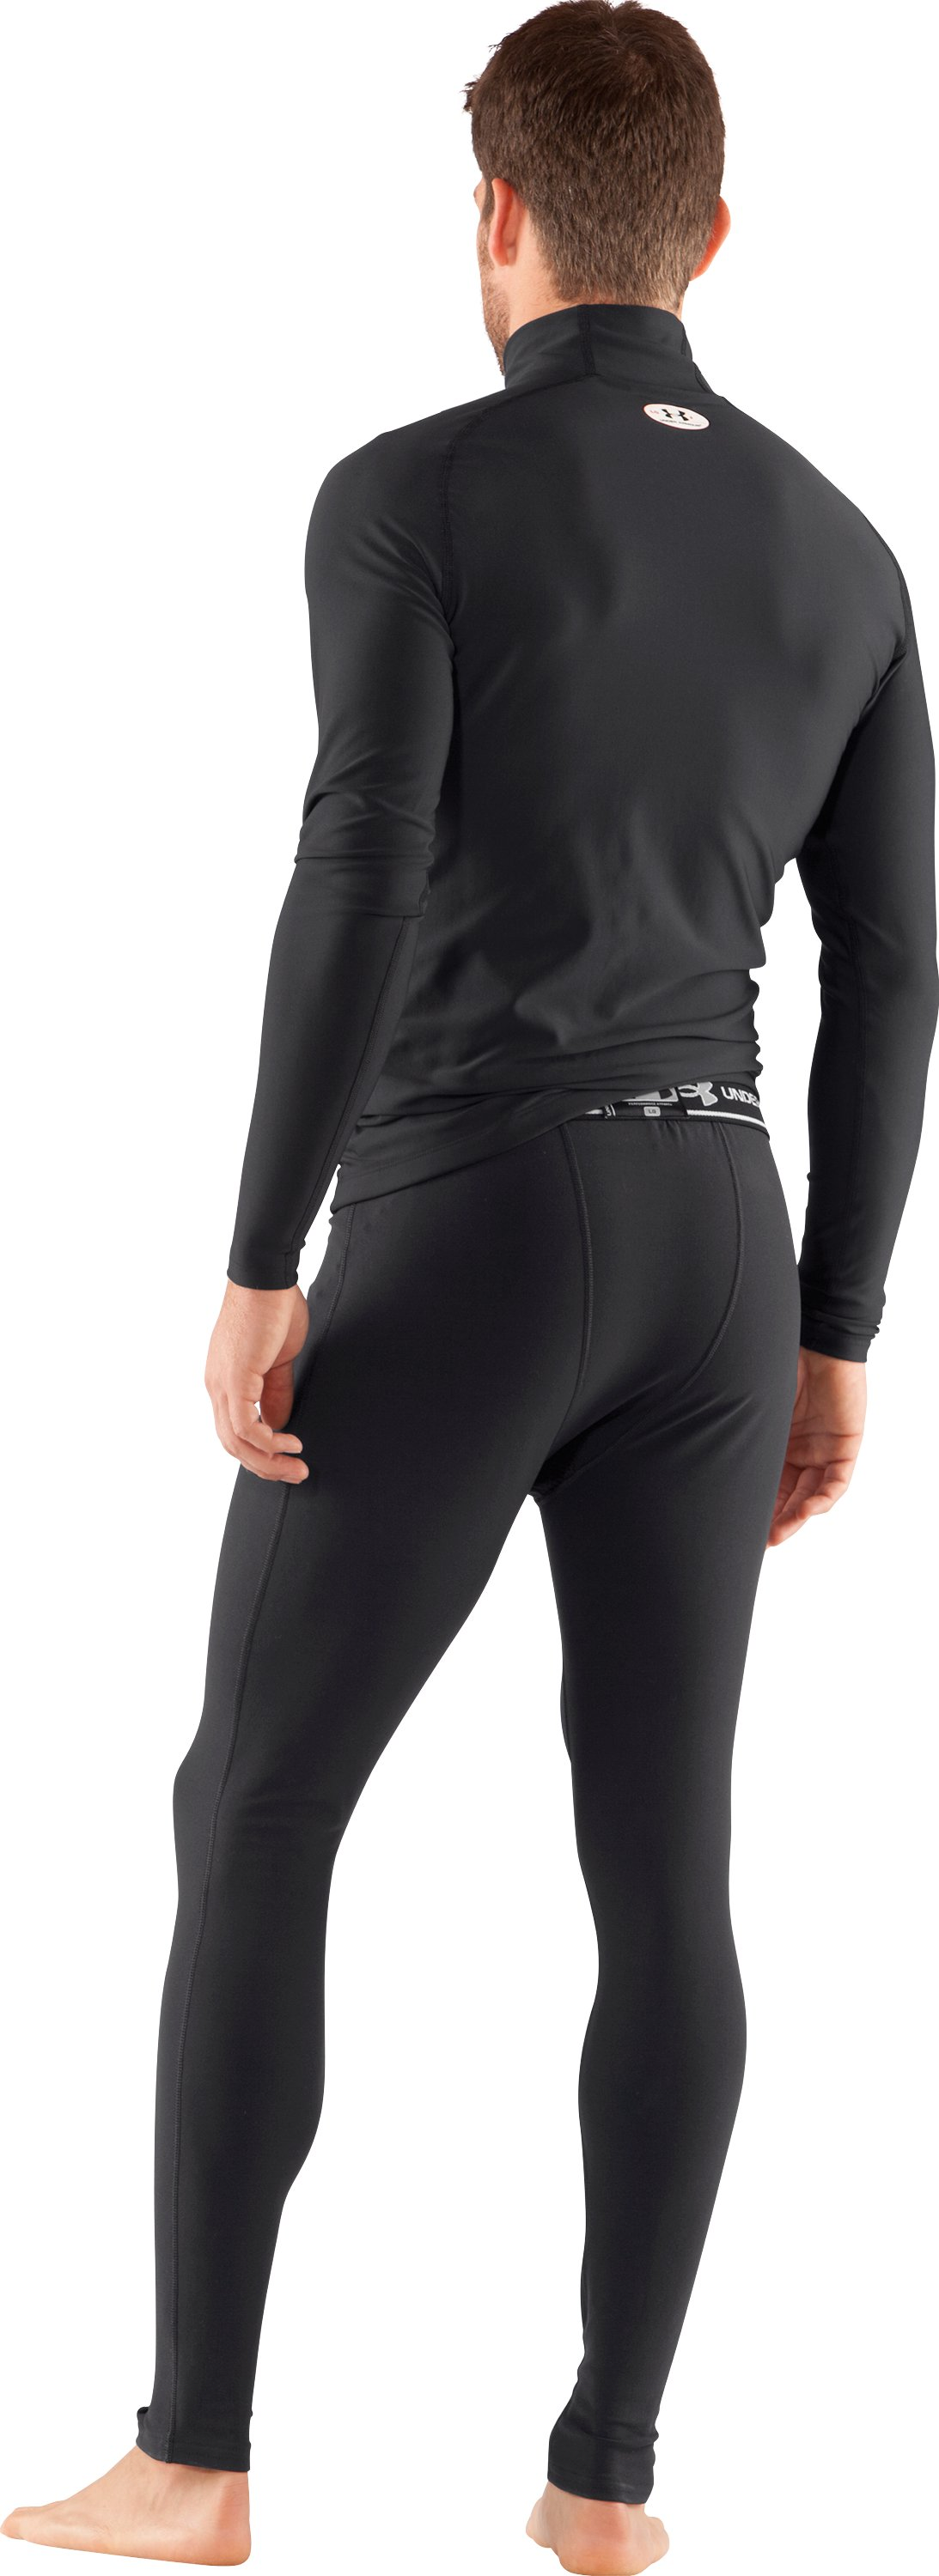 Men's ColdGear® Core Ventilated Leggings, Black , Back